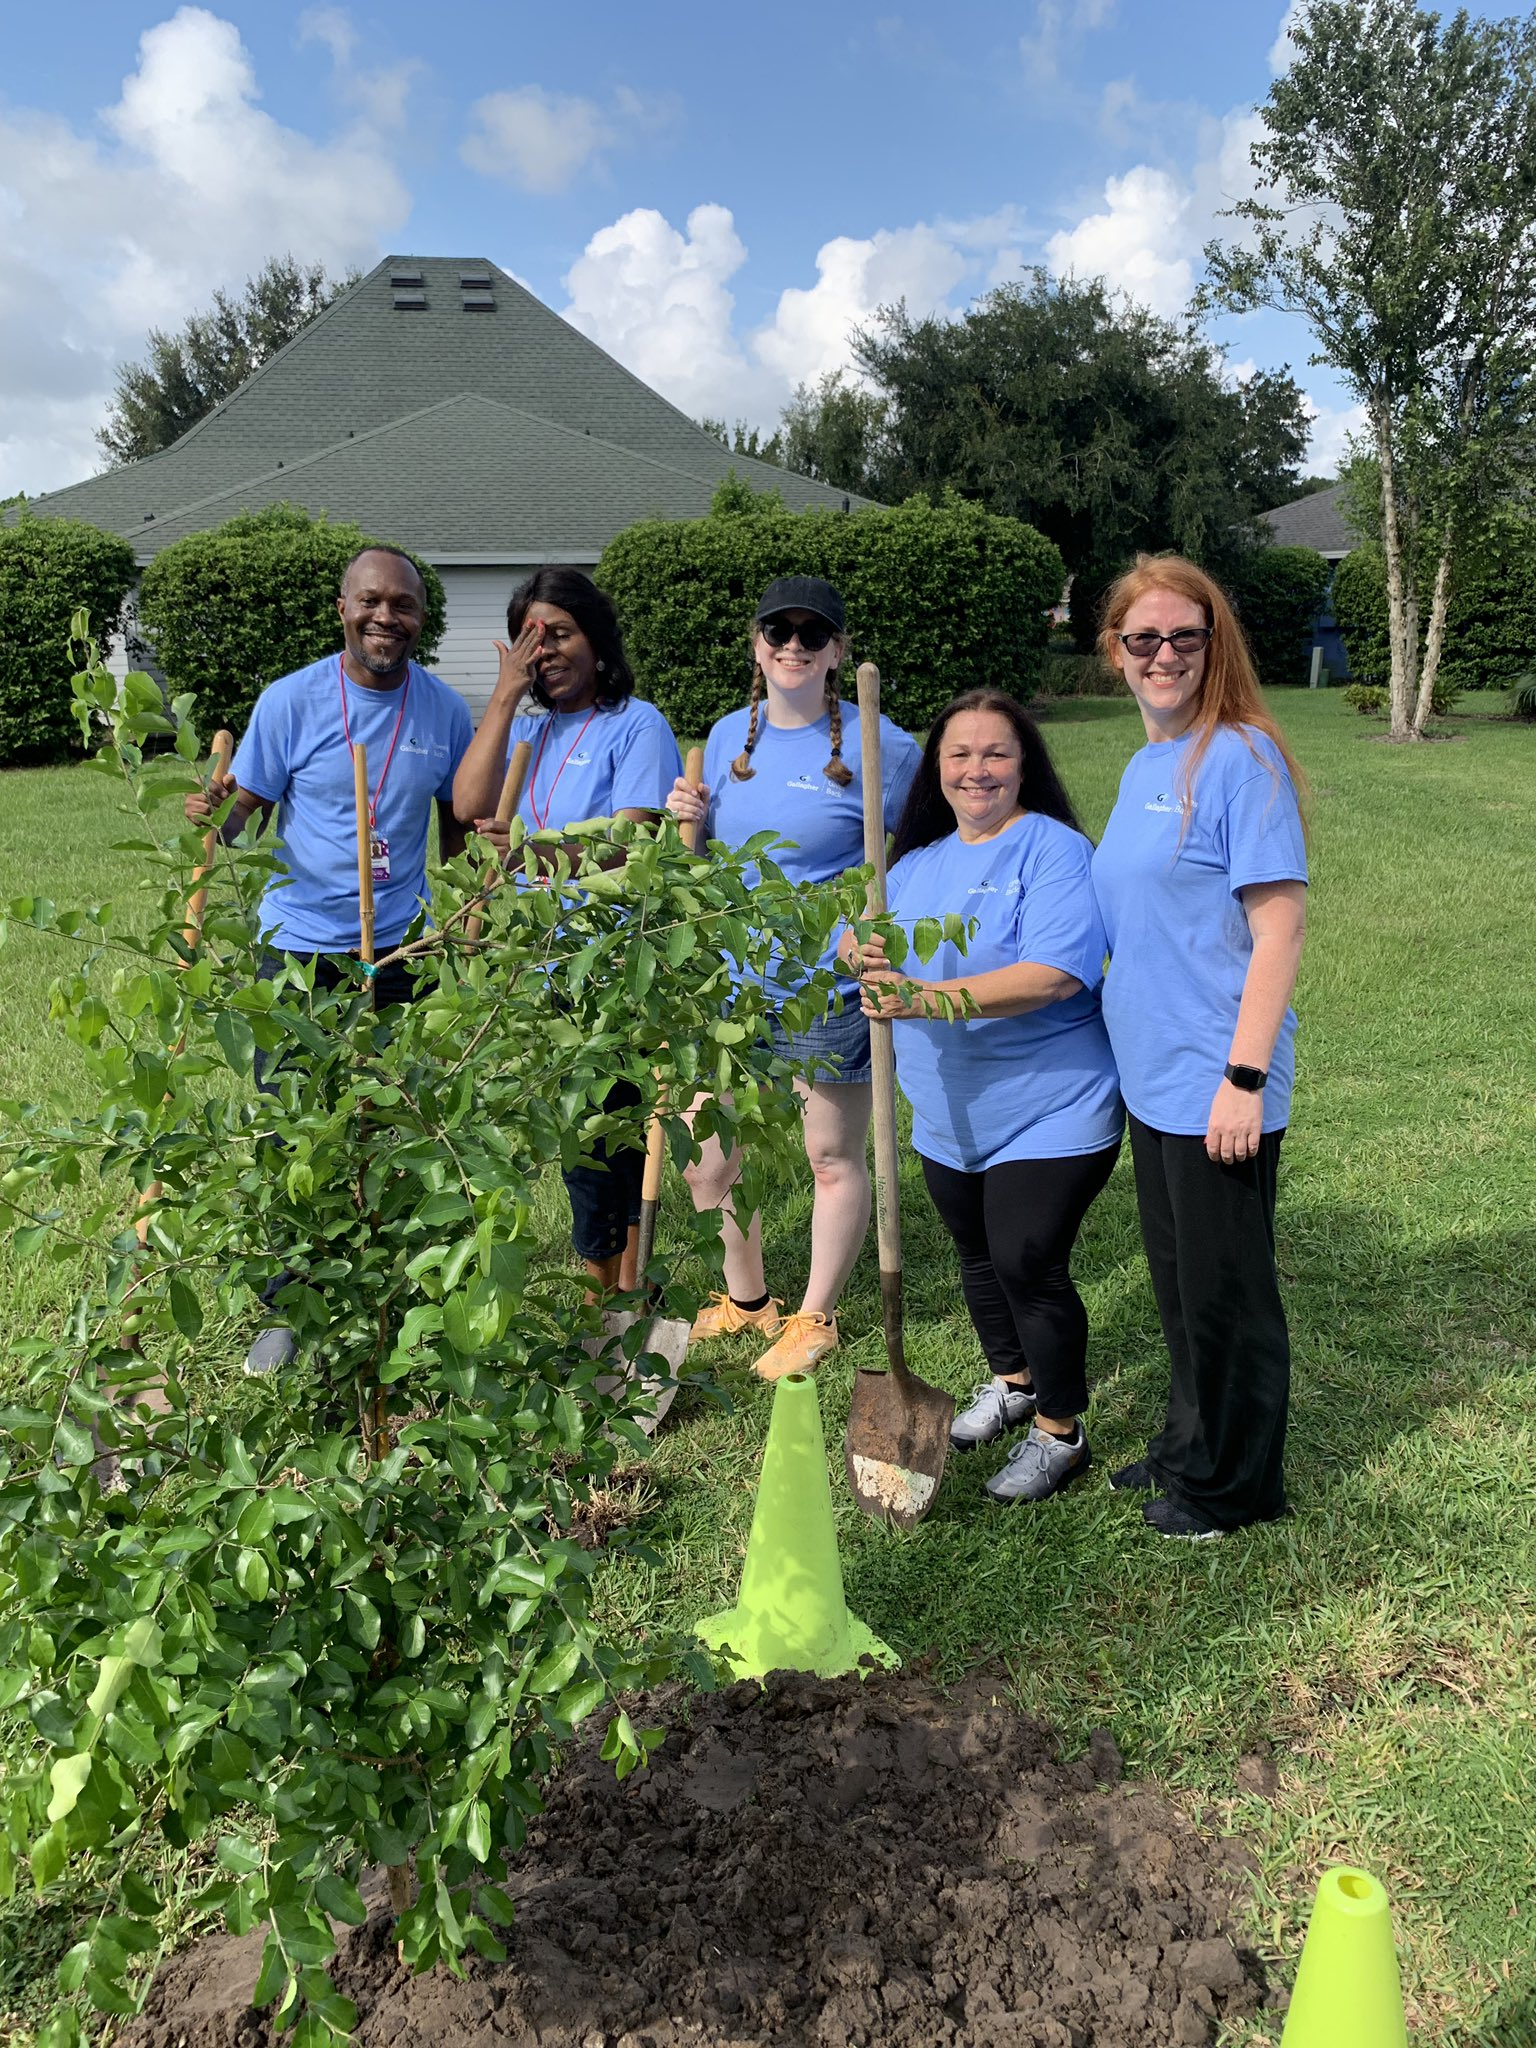 Rose Burford (Branch Manager) and her husband James, Andrea Humphries (Assistant Vice President), Alison Machulak (Assistant Branch Manager), and Megan Reed (Digital Marketing Lead) planting a tree.